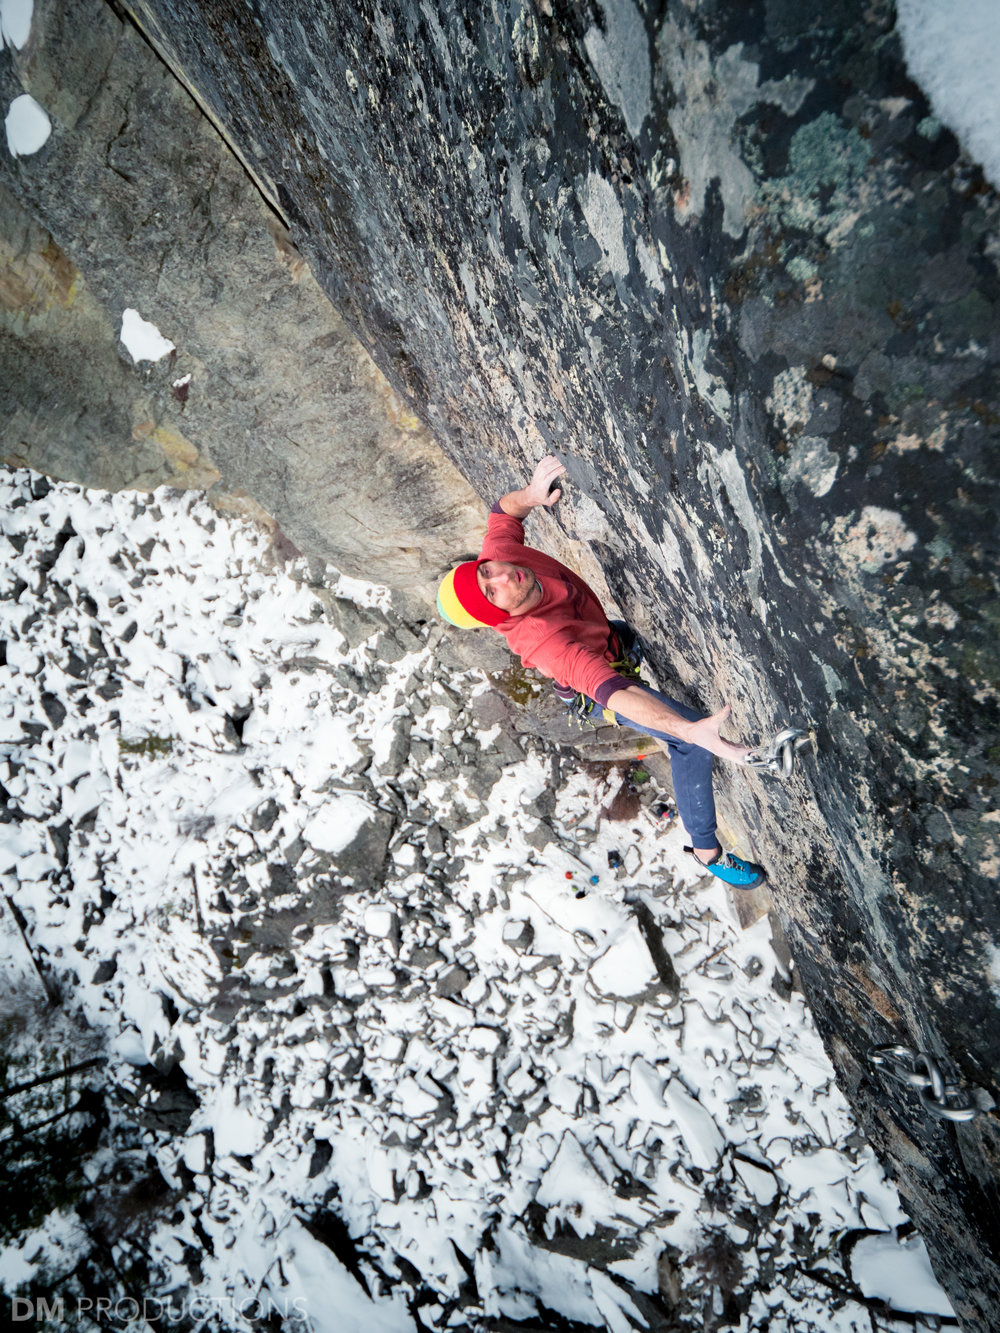 Sonnie nearing the top of Air Test, 5.13, Great White Wall.